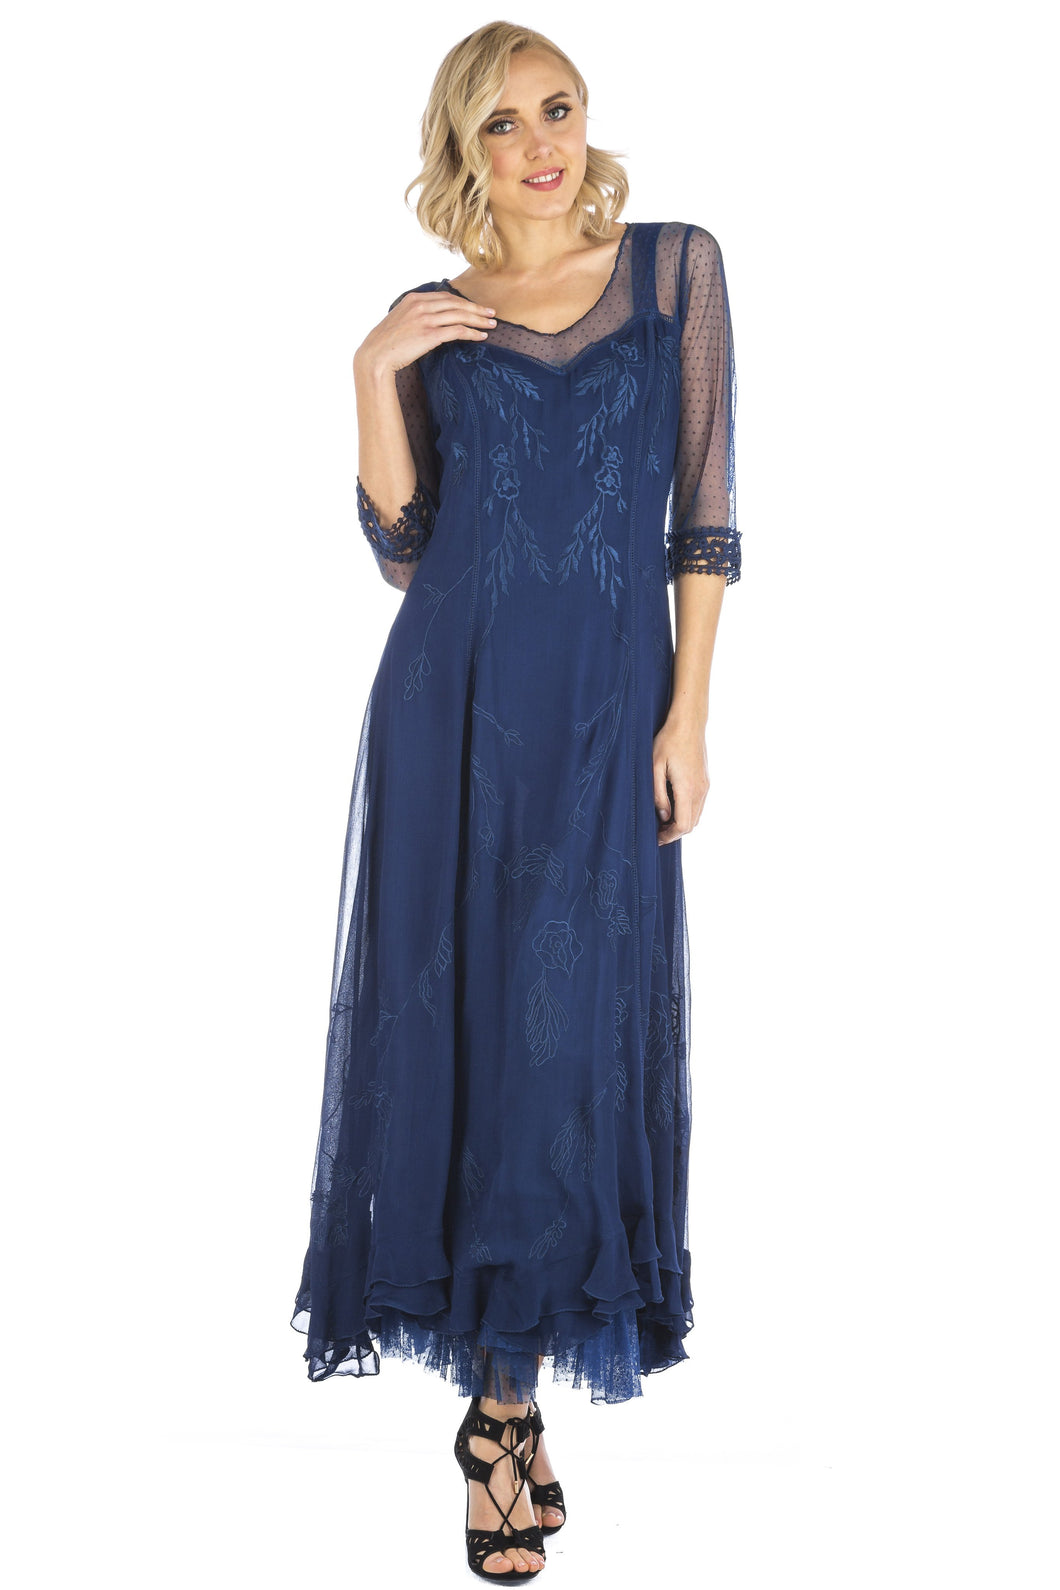 Nataya Celine CL-068 Royal Blue Gown